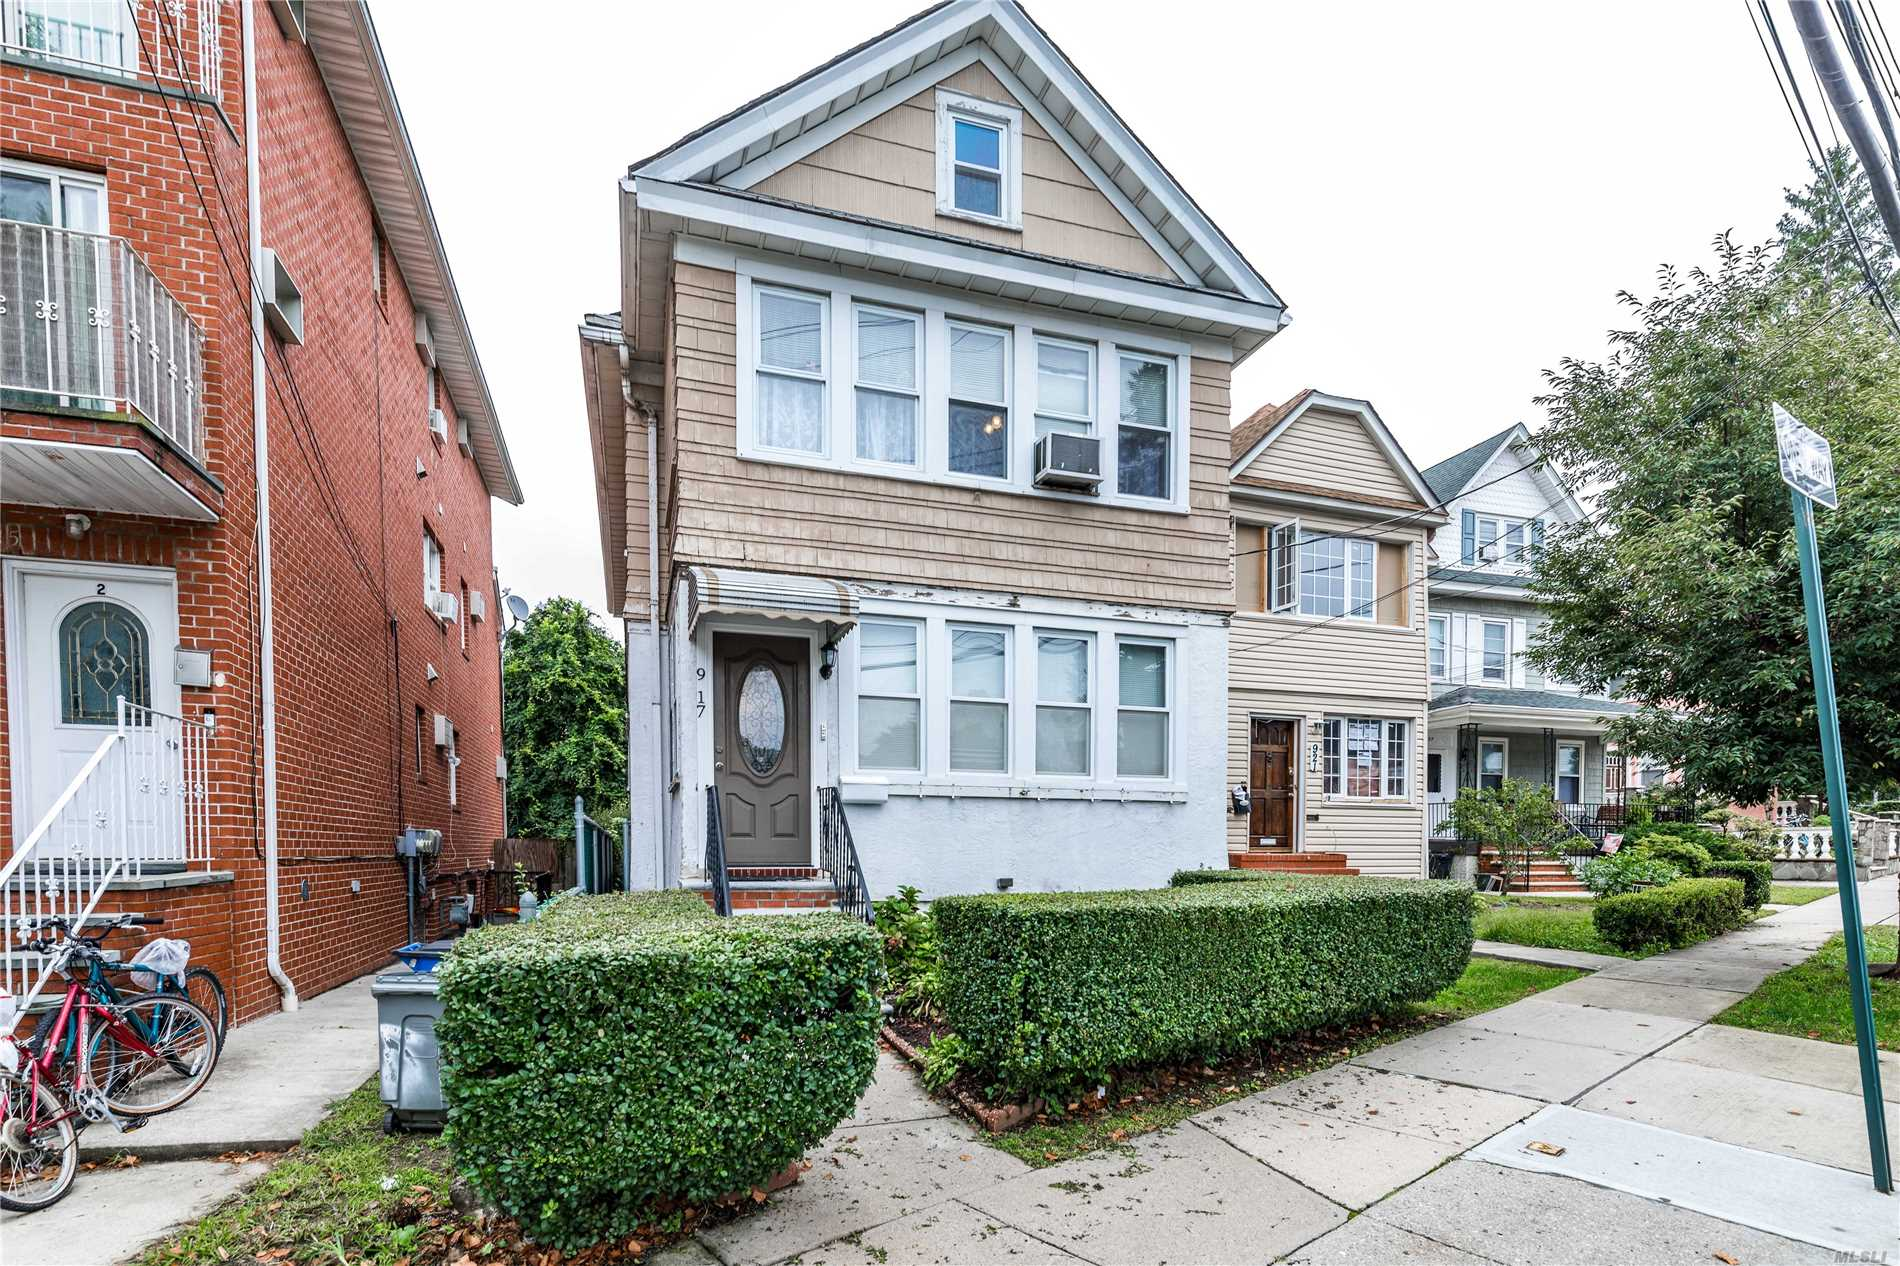 Detached 2 Family With Beautiful Yard. Good Layout - Needs Updating. 3Br Apartment Over 2Br Apartment Plus Attic And Newly Finished Basement. Adjacent To College Estates